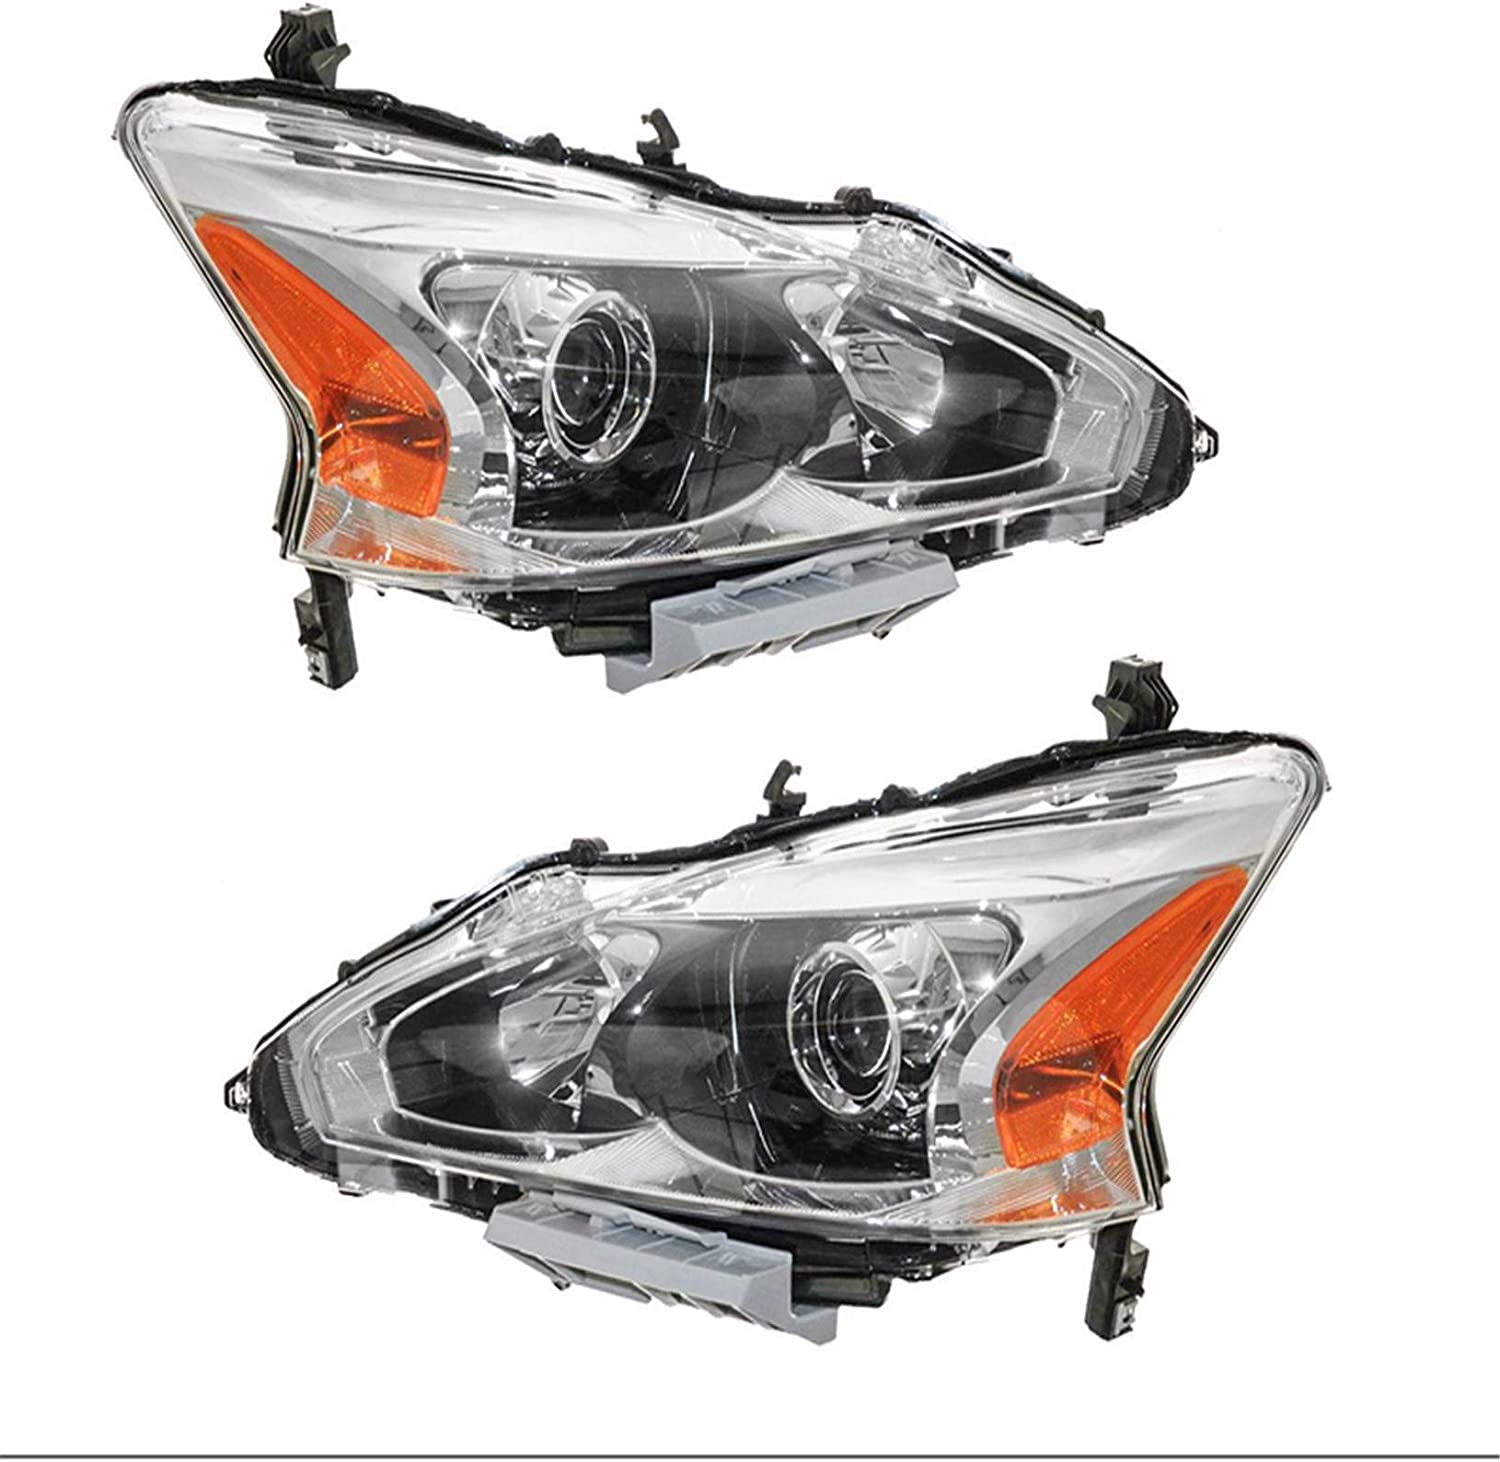 Driver side WITH install kit LED -Chrome 6 inch 2014 Kenworth CONVENTIONAL Side Roof mount spotlight